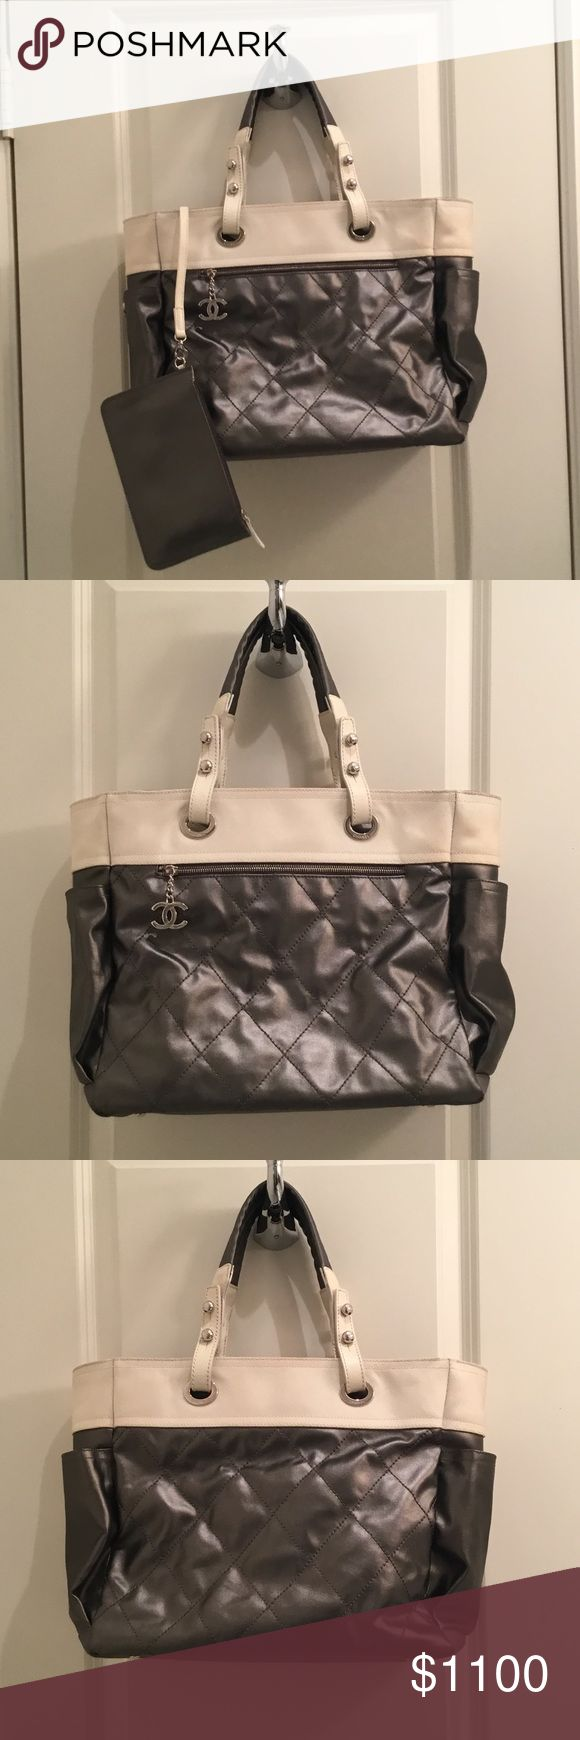 CHANEL Tote CHANEL Biarritz Silver Tote Bag. In excellent used condition. Comes with authenticity card, and dust bag. Great bag! CHANEL Bags